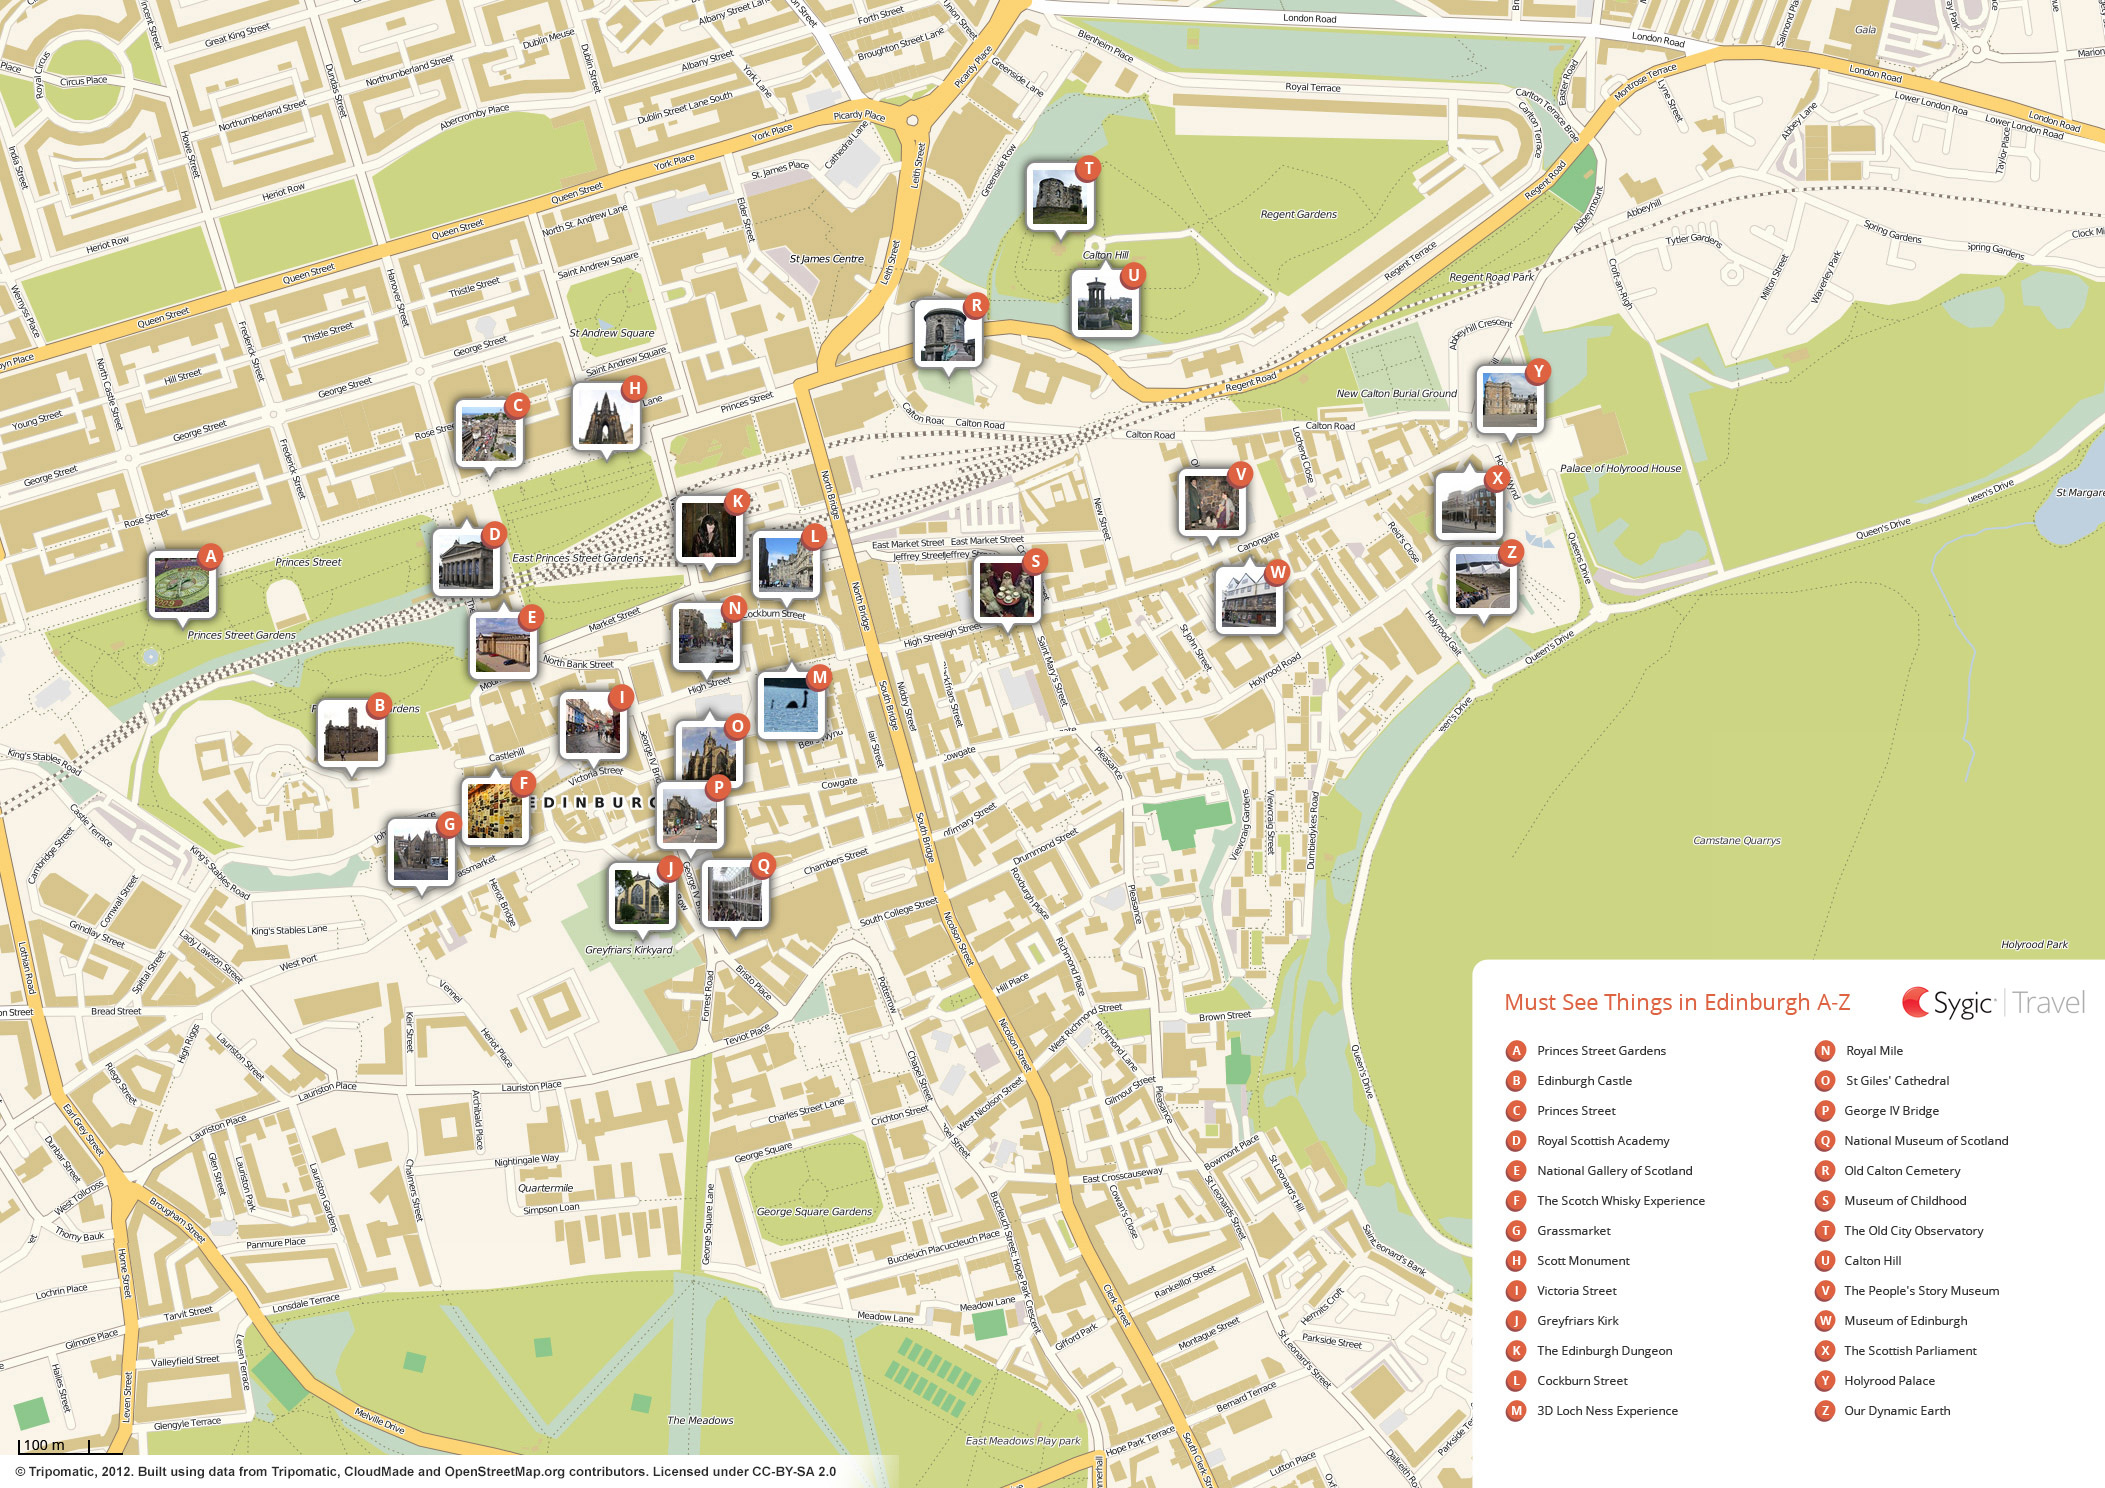 Edinburgh Printable Tourist Map – Boston Tourist Attractions Map